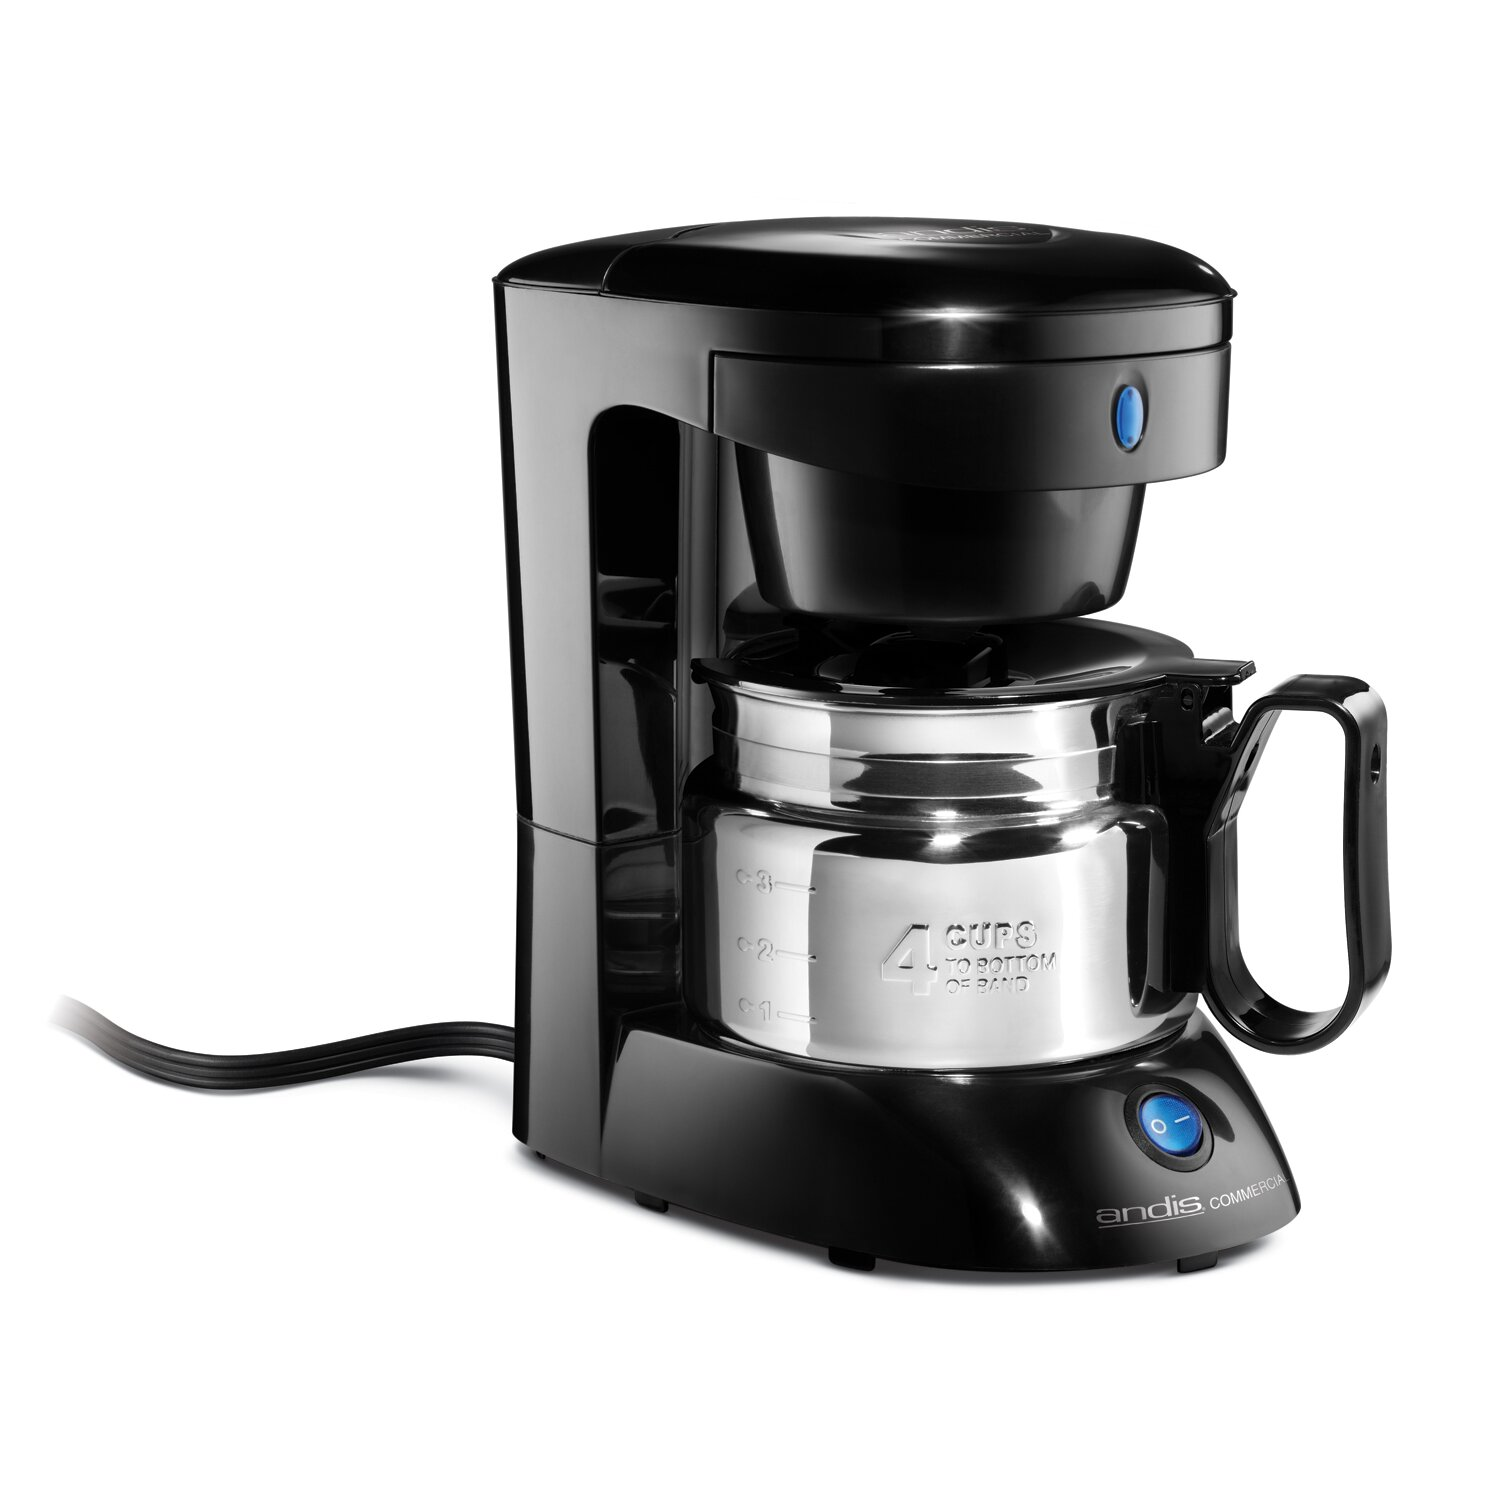 Coffee Maker Reviews 4 Cup : Andis Company 4 Cup Coffee Maker & Reviews Wayfair